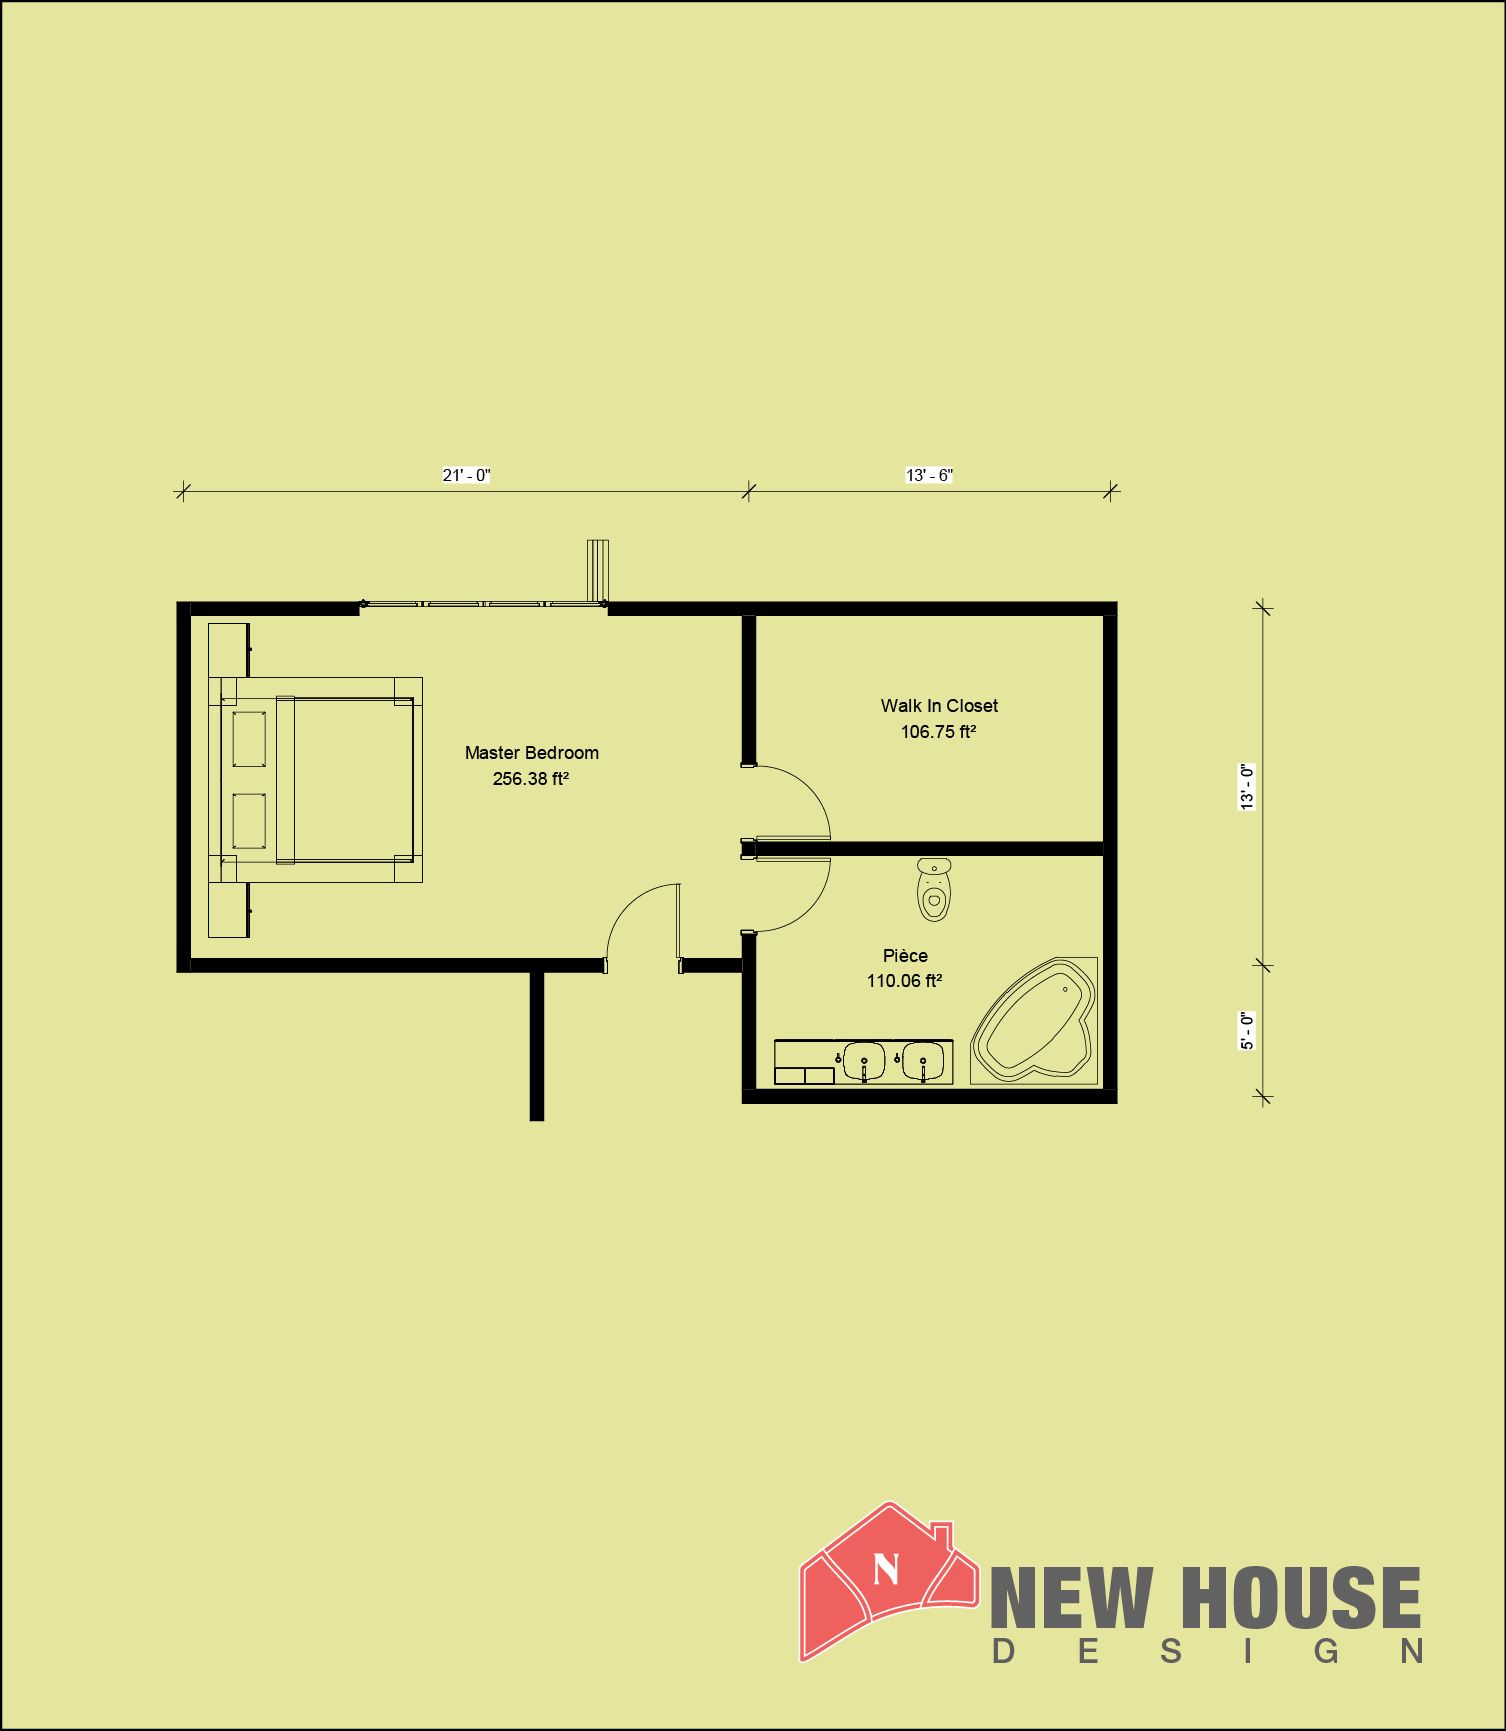 Master Bedroom Plans With Bath And Walk In Closet New House Design Master Bedroom Plans Master Bedroom Addition Master Bedroom